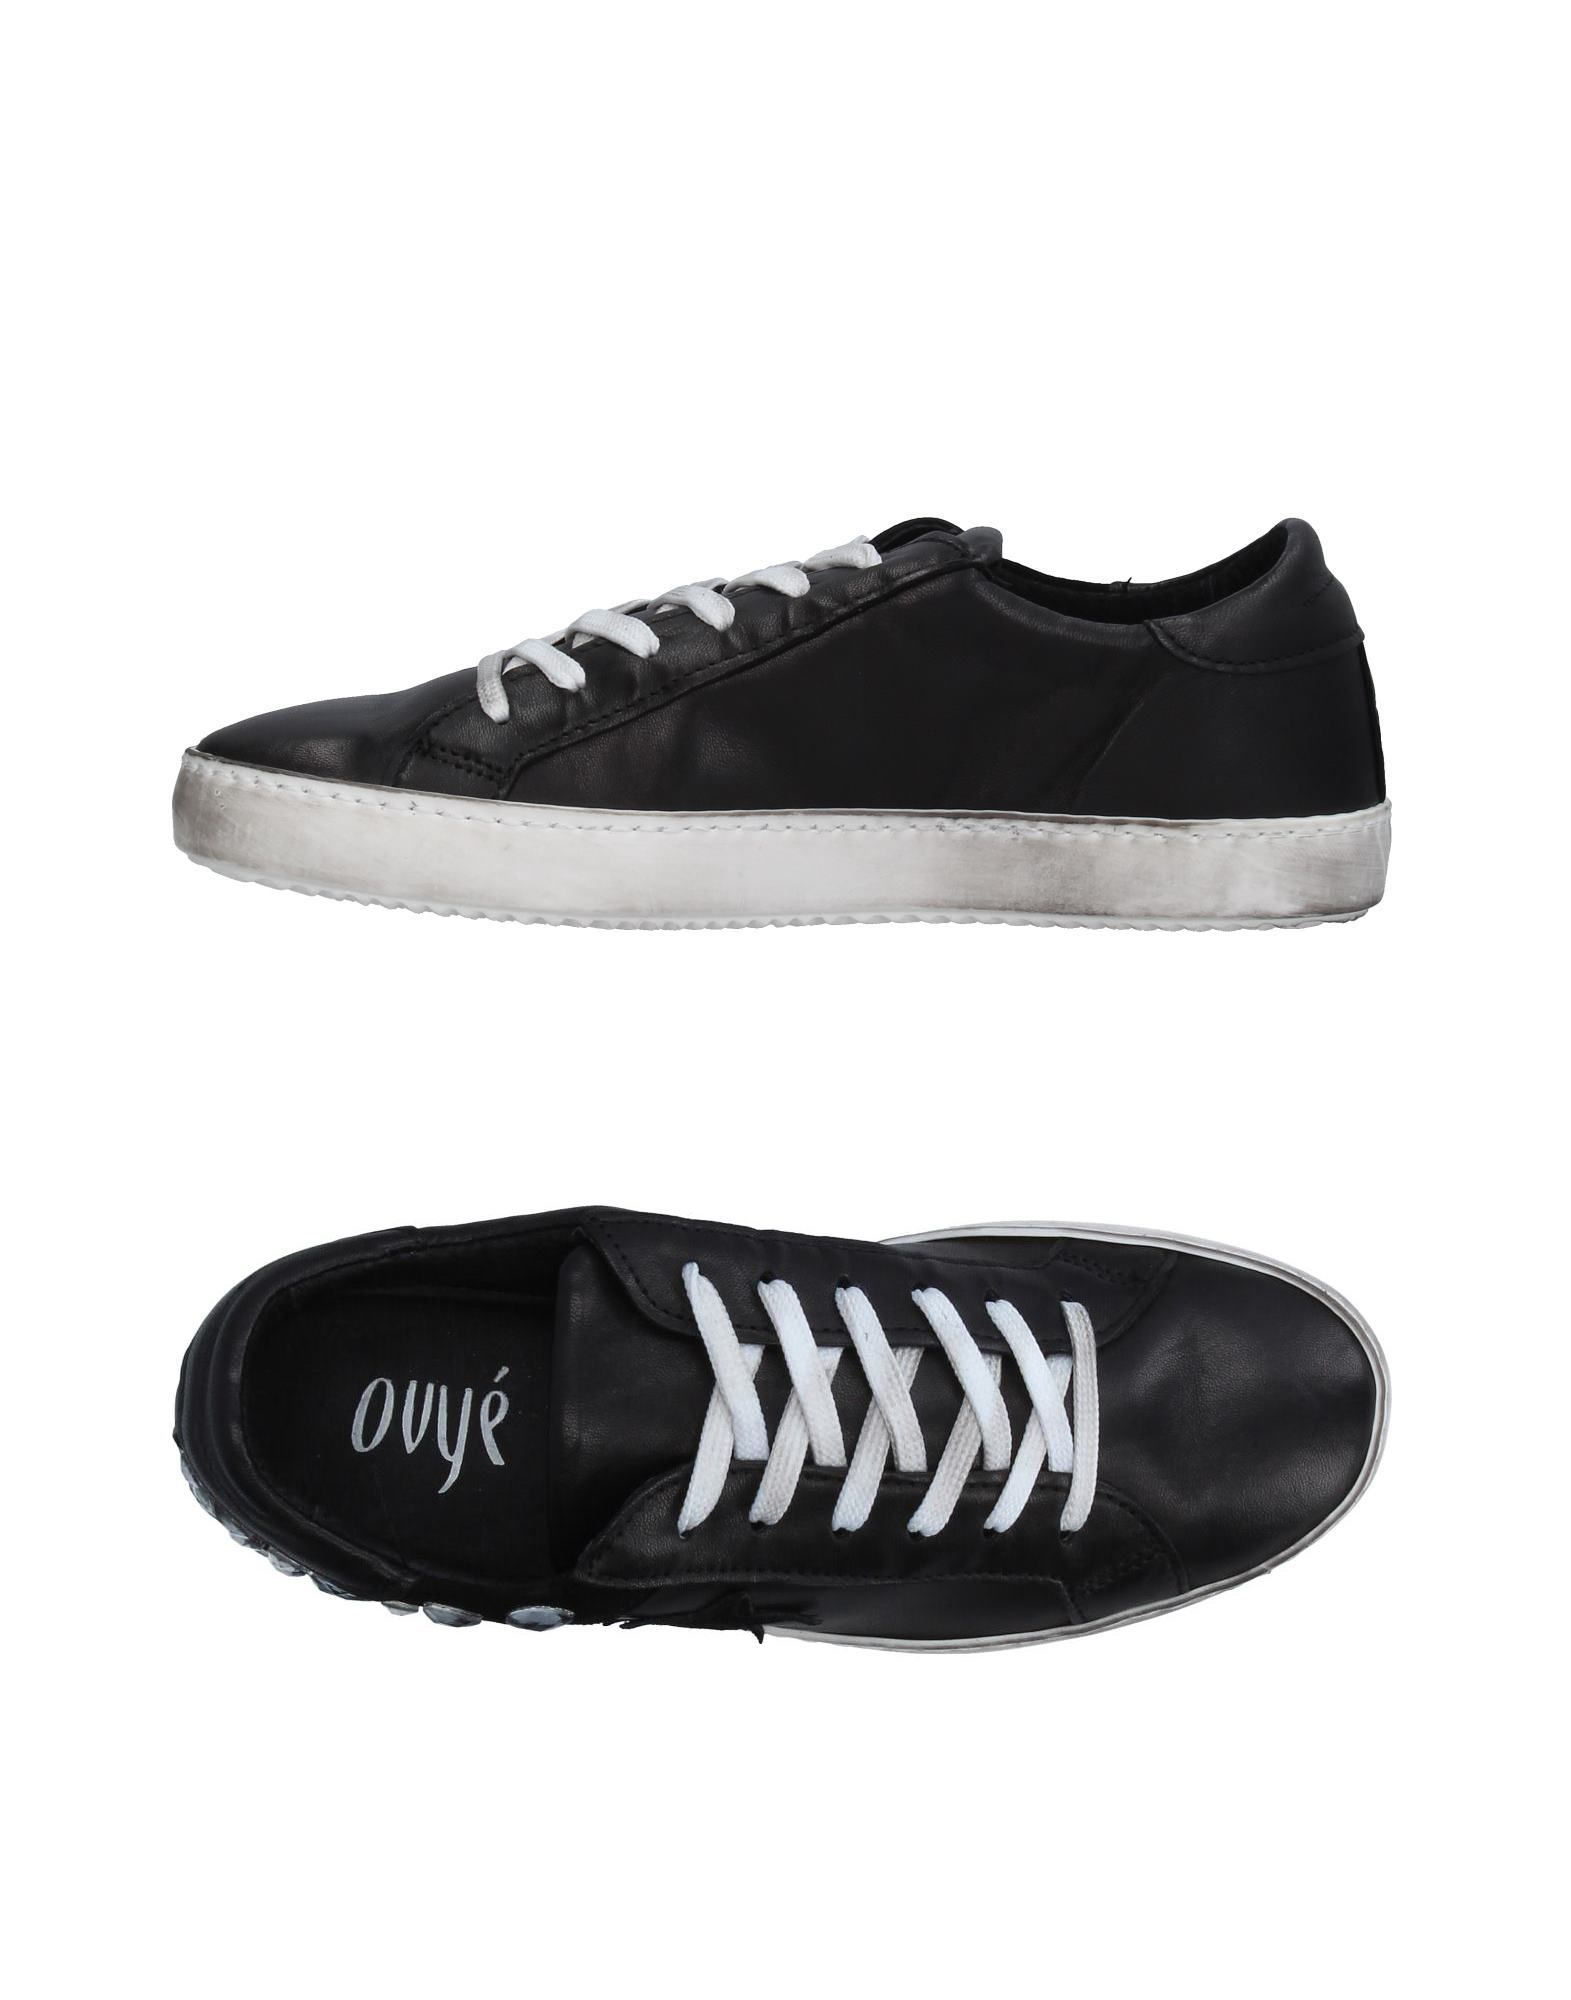 Ovye By Cristina Lucchi Sneakers Shop At Ebates